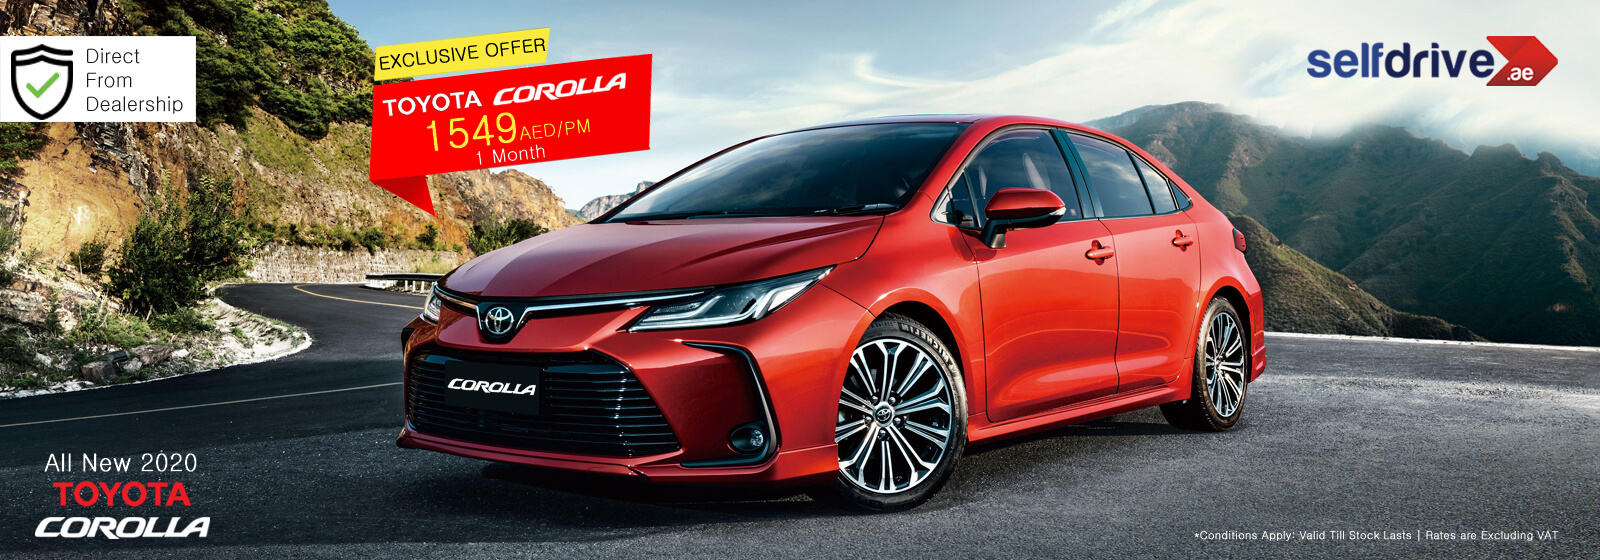 Upgrade to the new 2020 #Corolla this summer!